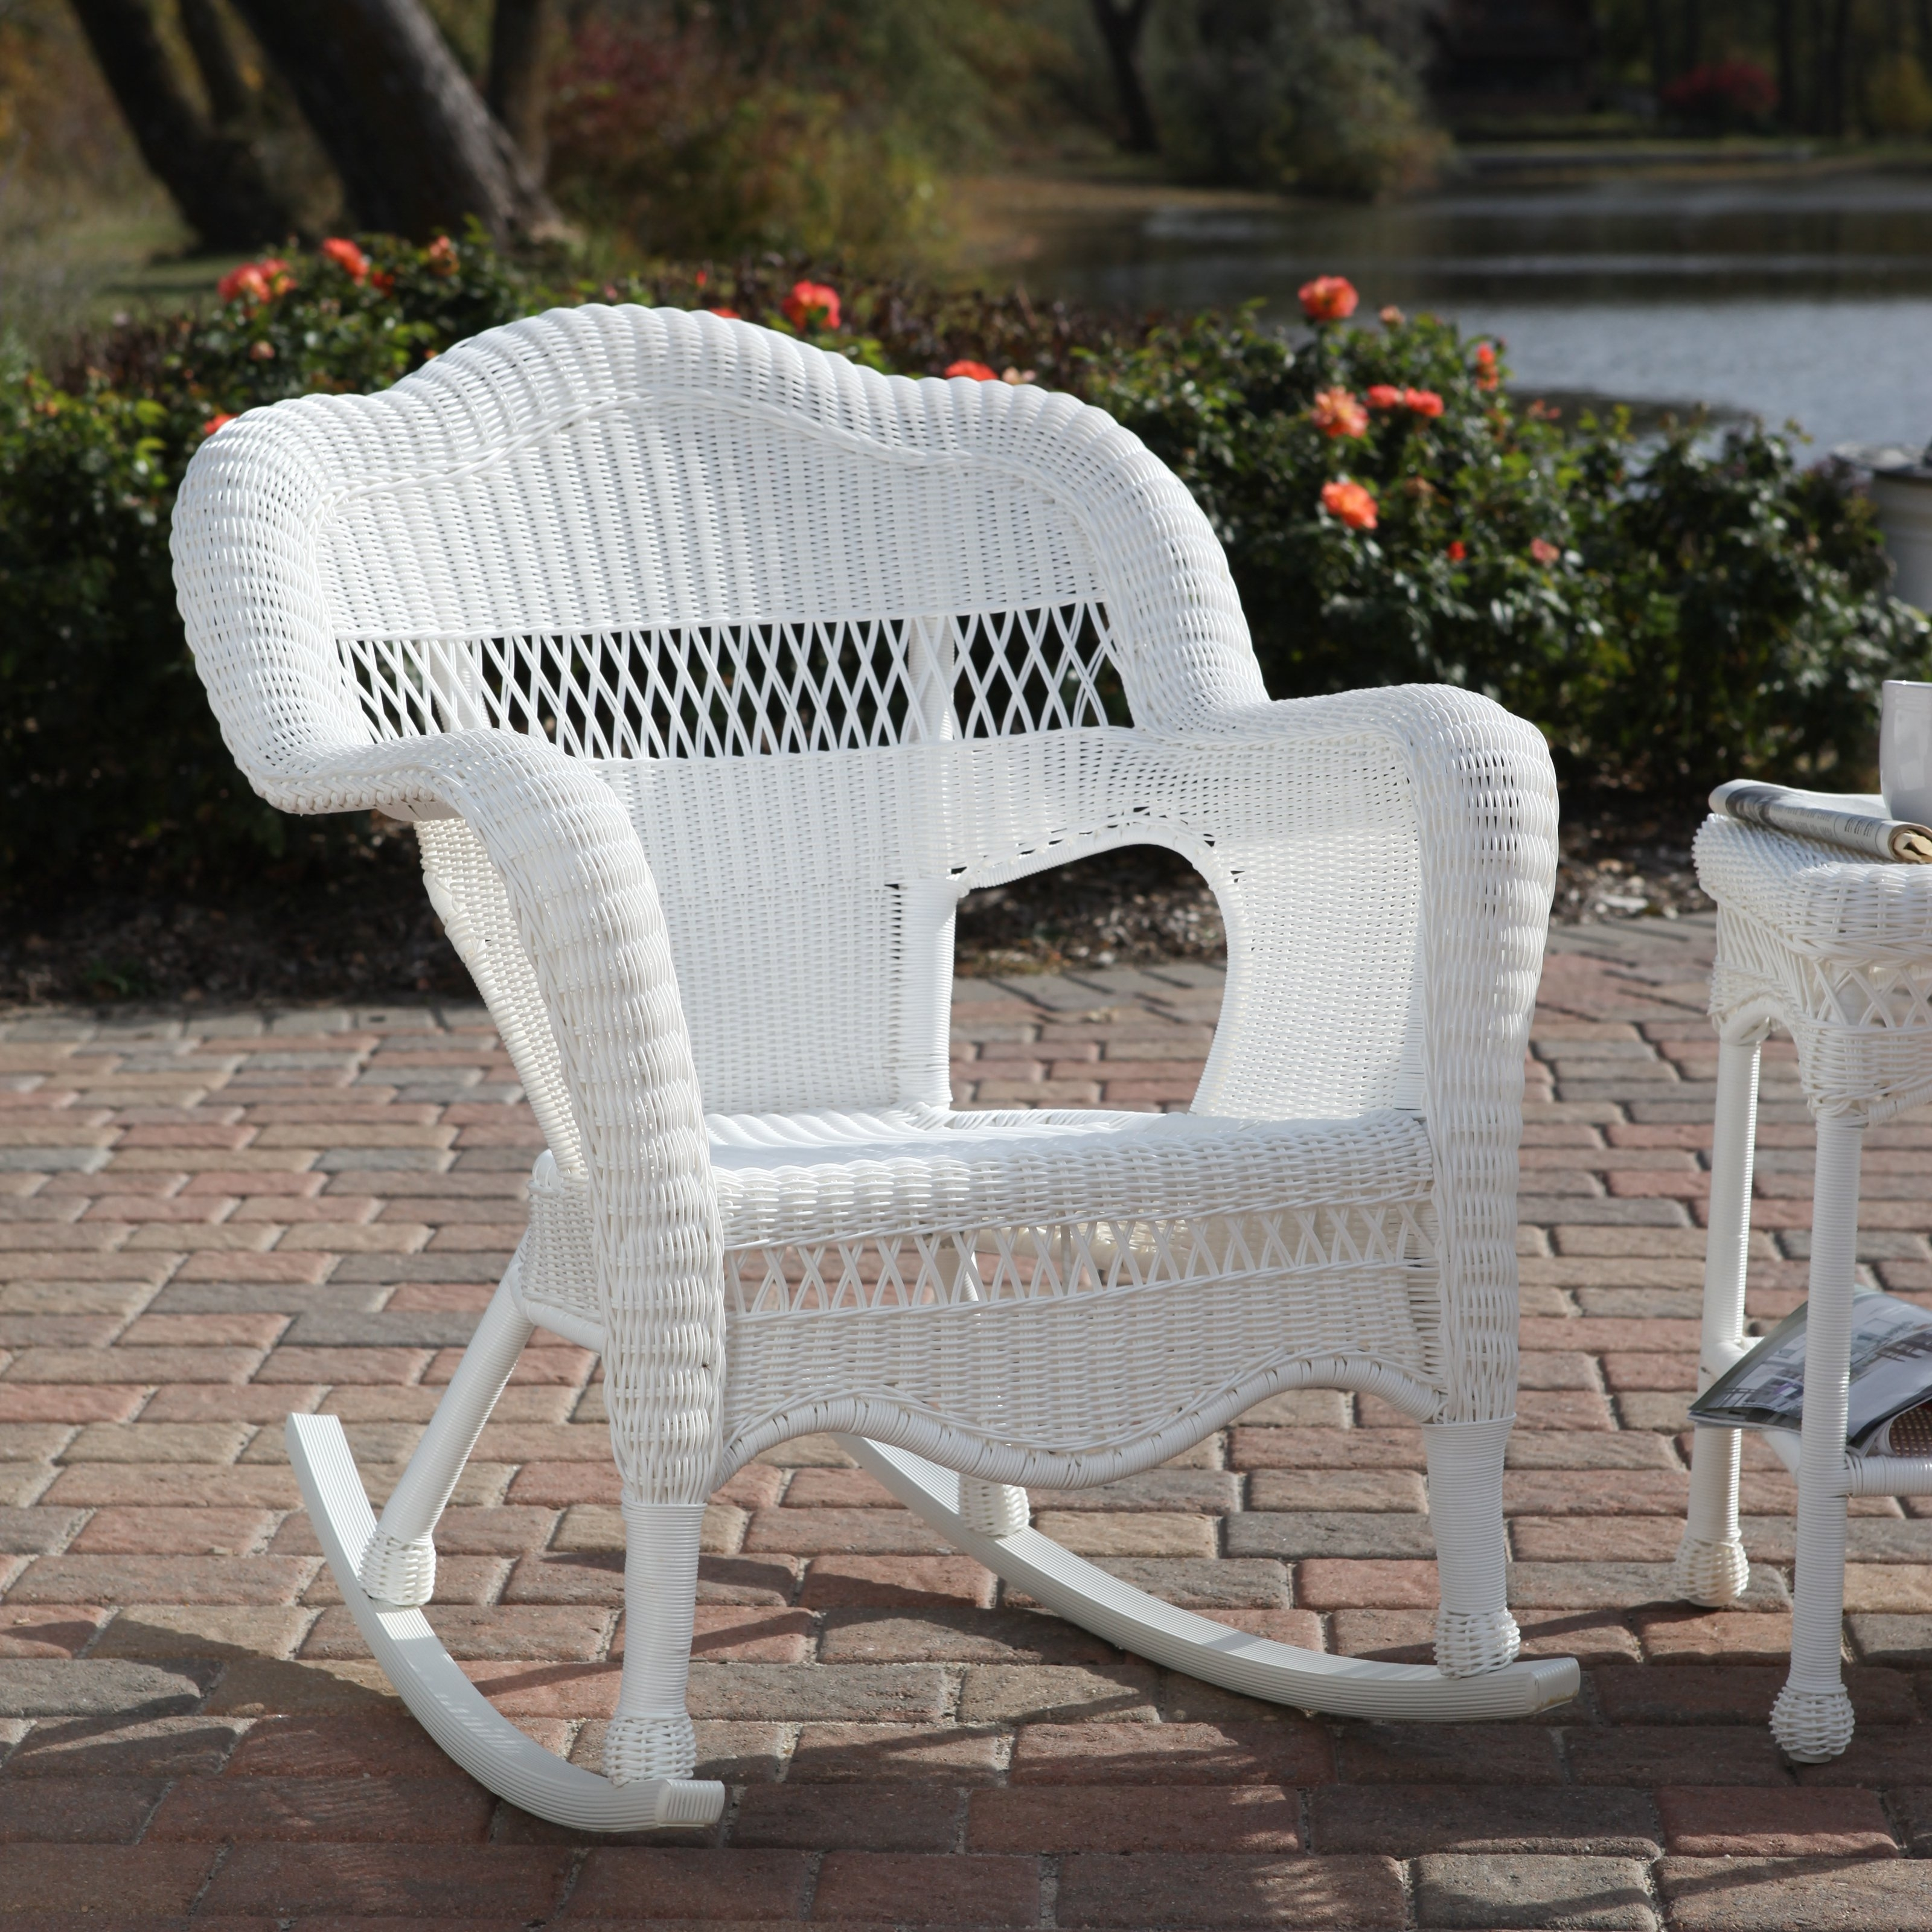 Sahara All Weather Wicker Rocking Chair | Hayneedle In Resin Wicker Rocking Chairs (#10 of 15)